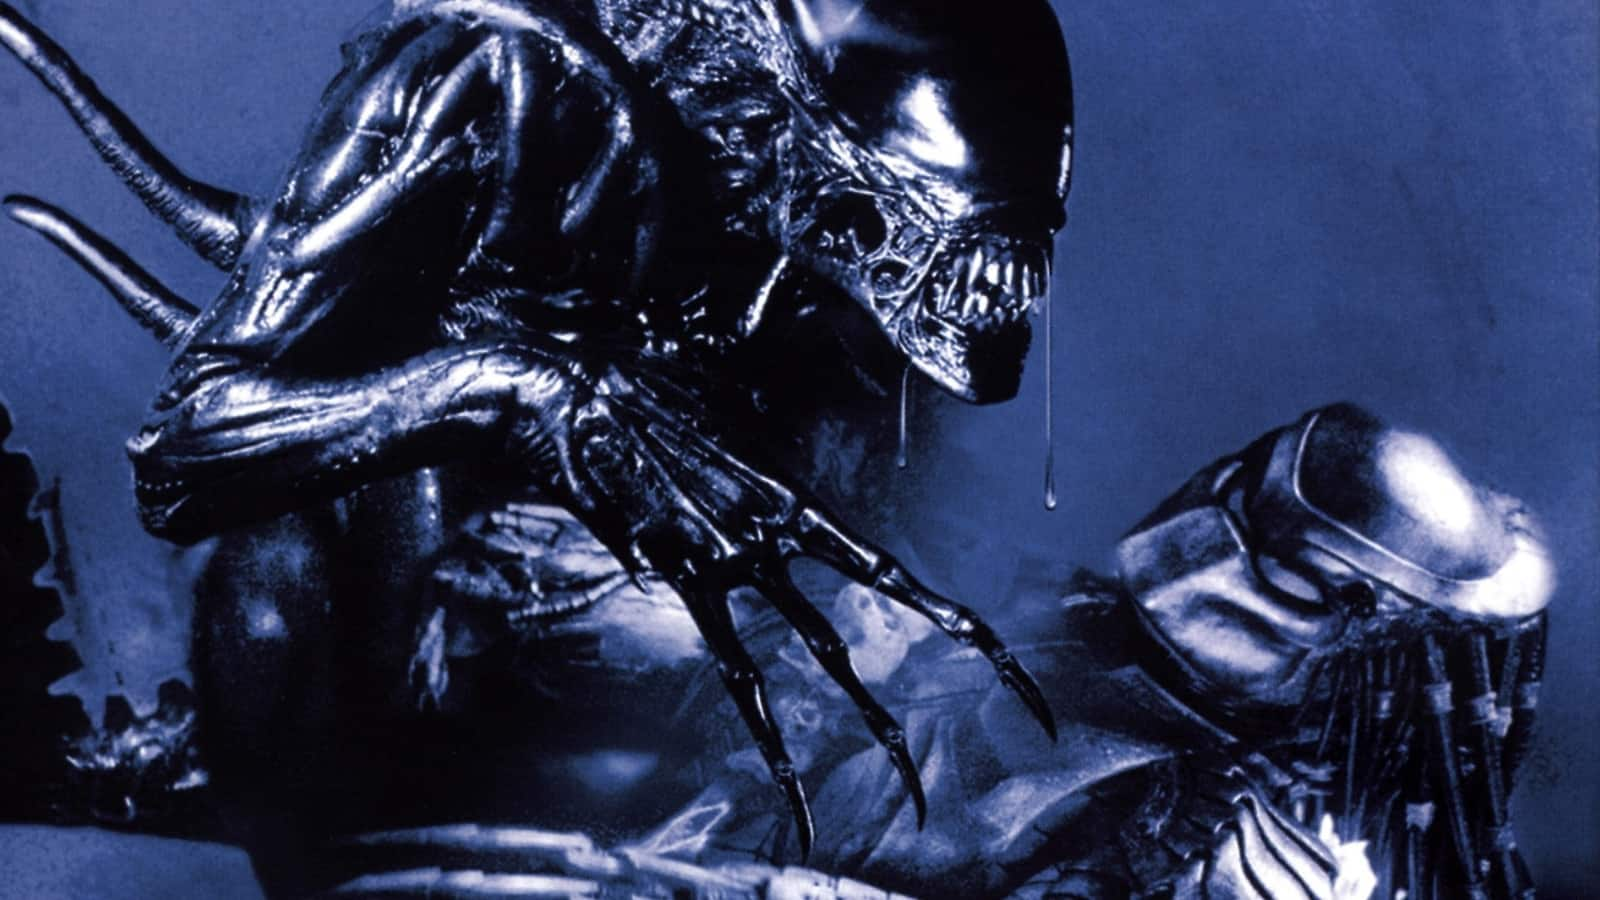 alien-vs.-predator-2004